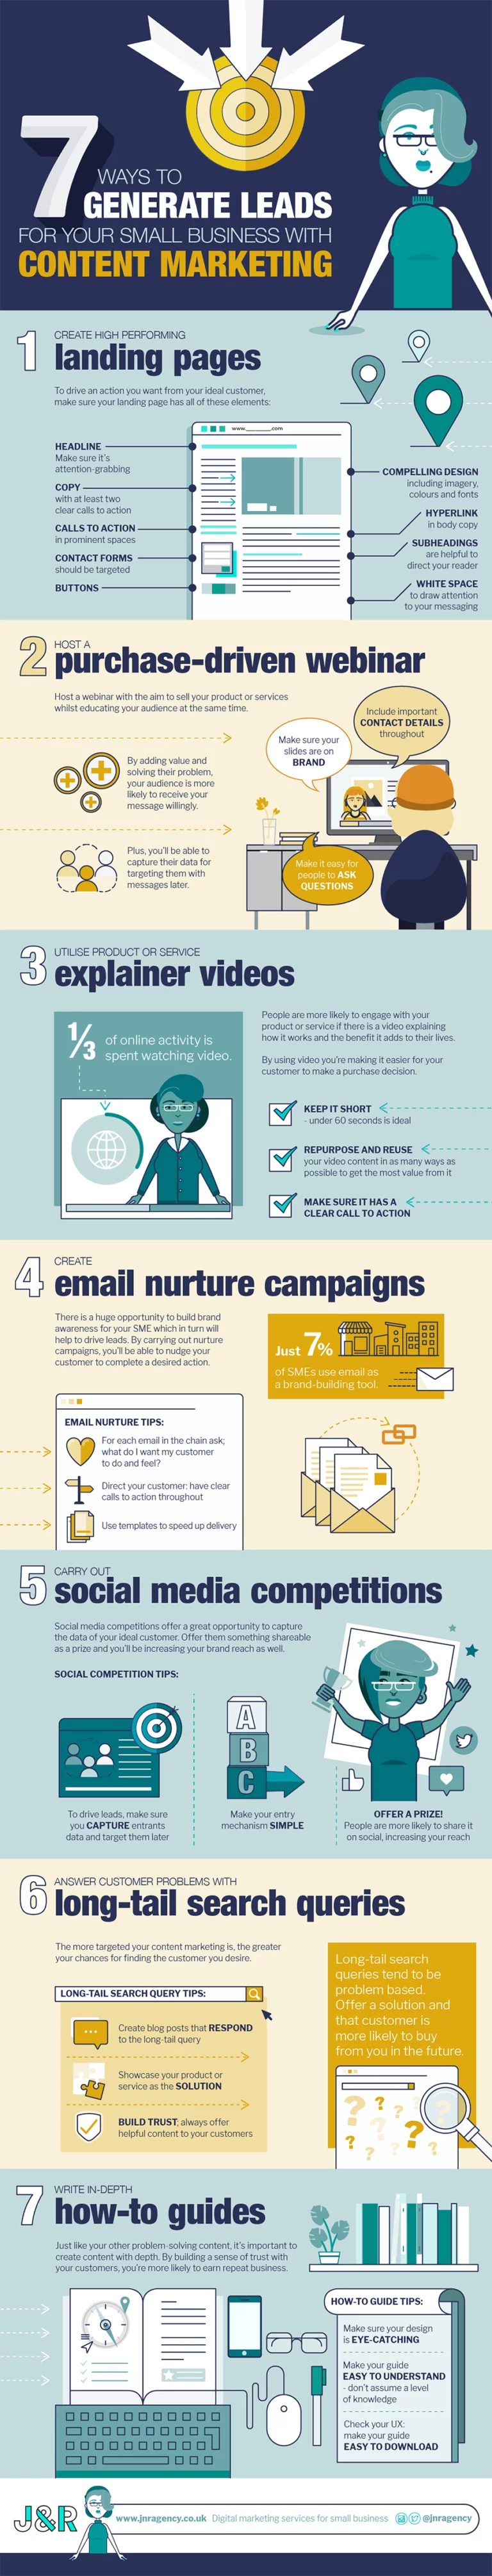 7 Ways to Generate Leads infographic